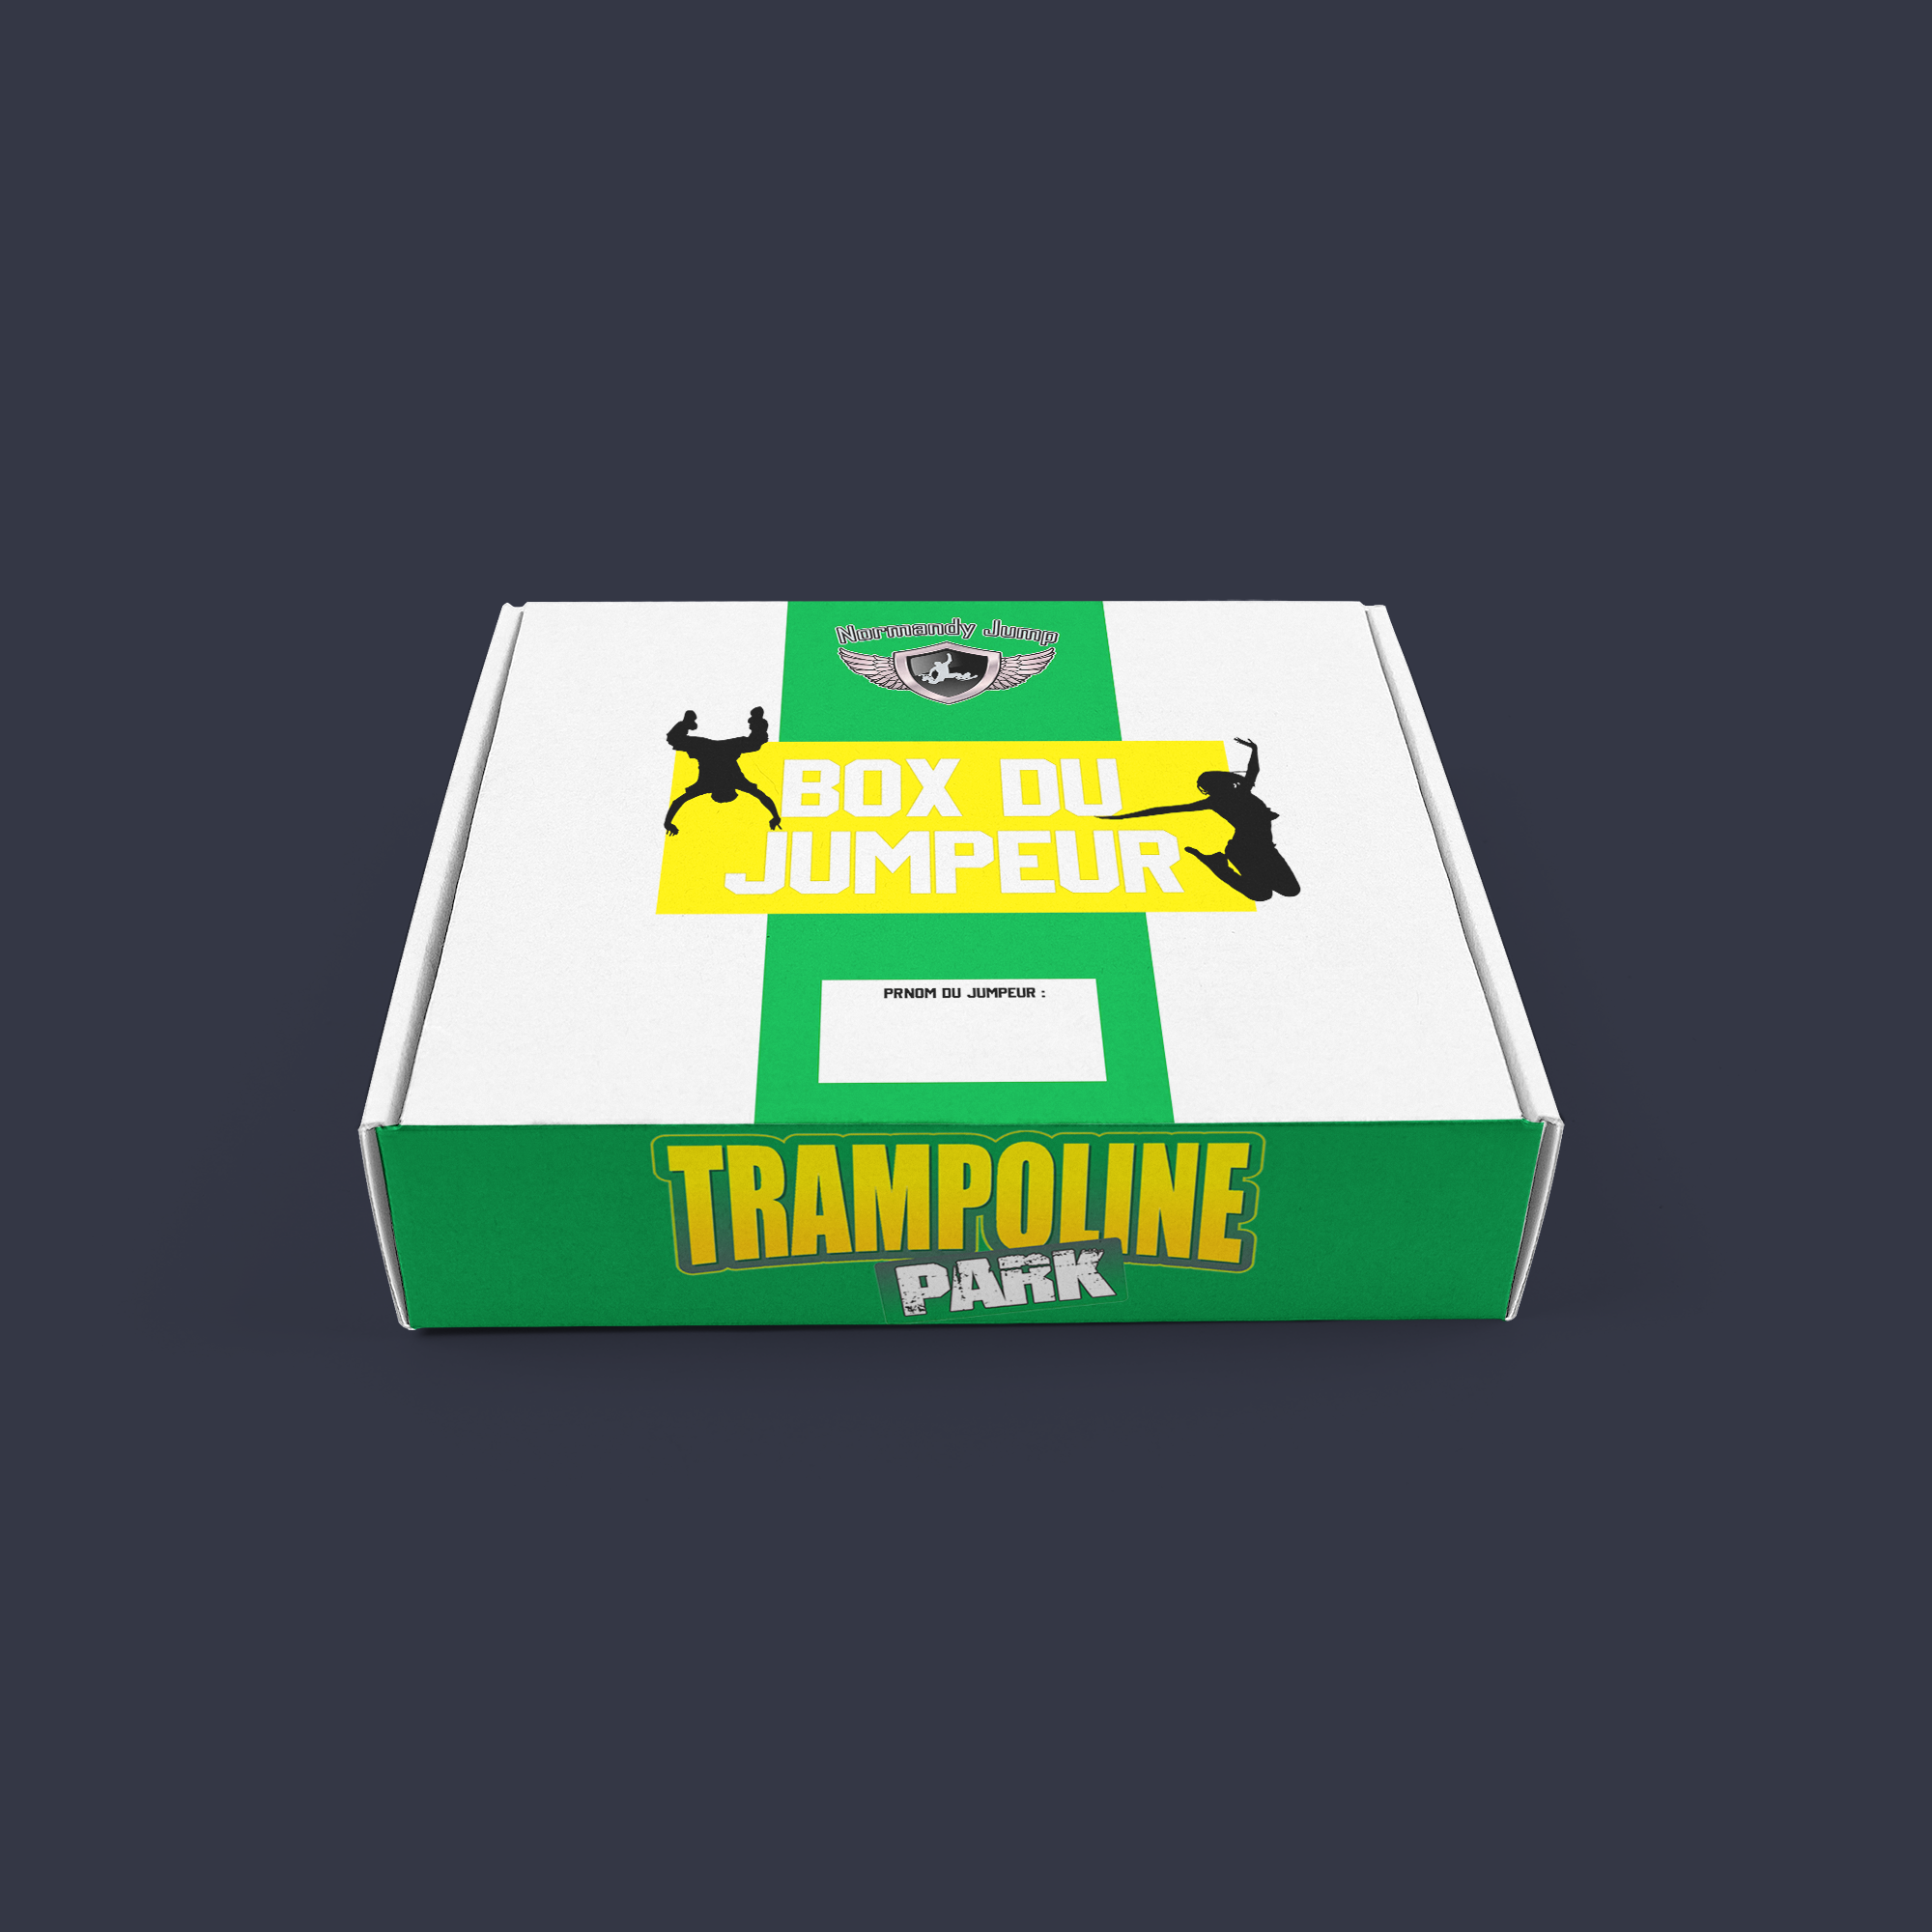 Box trampoline park normandy jump